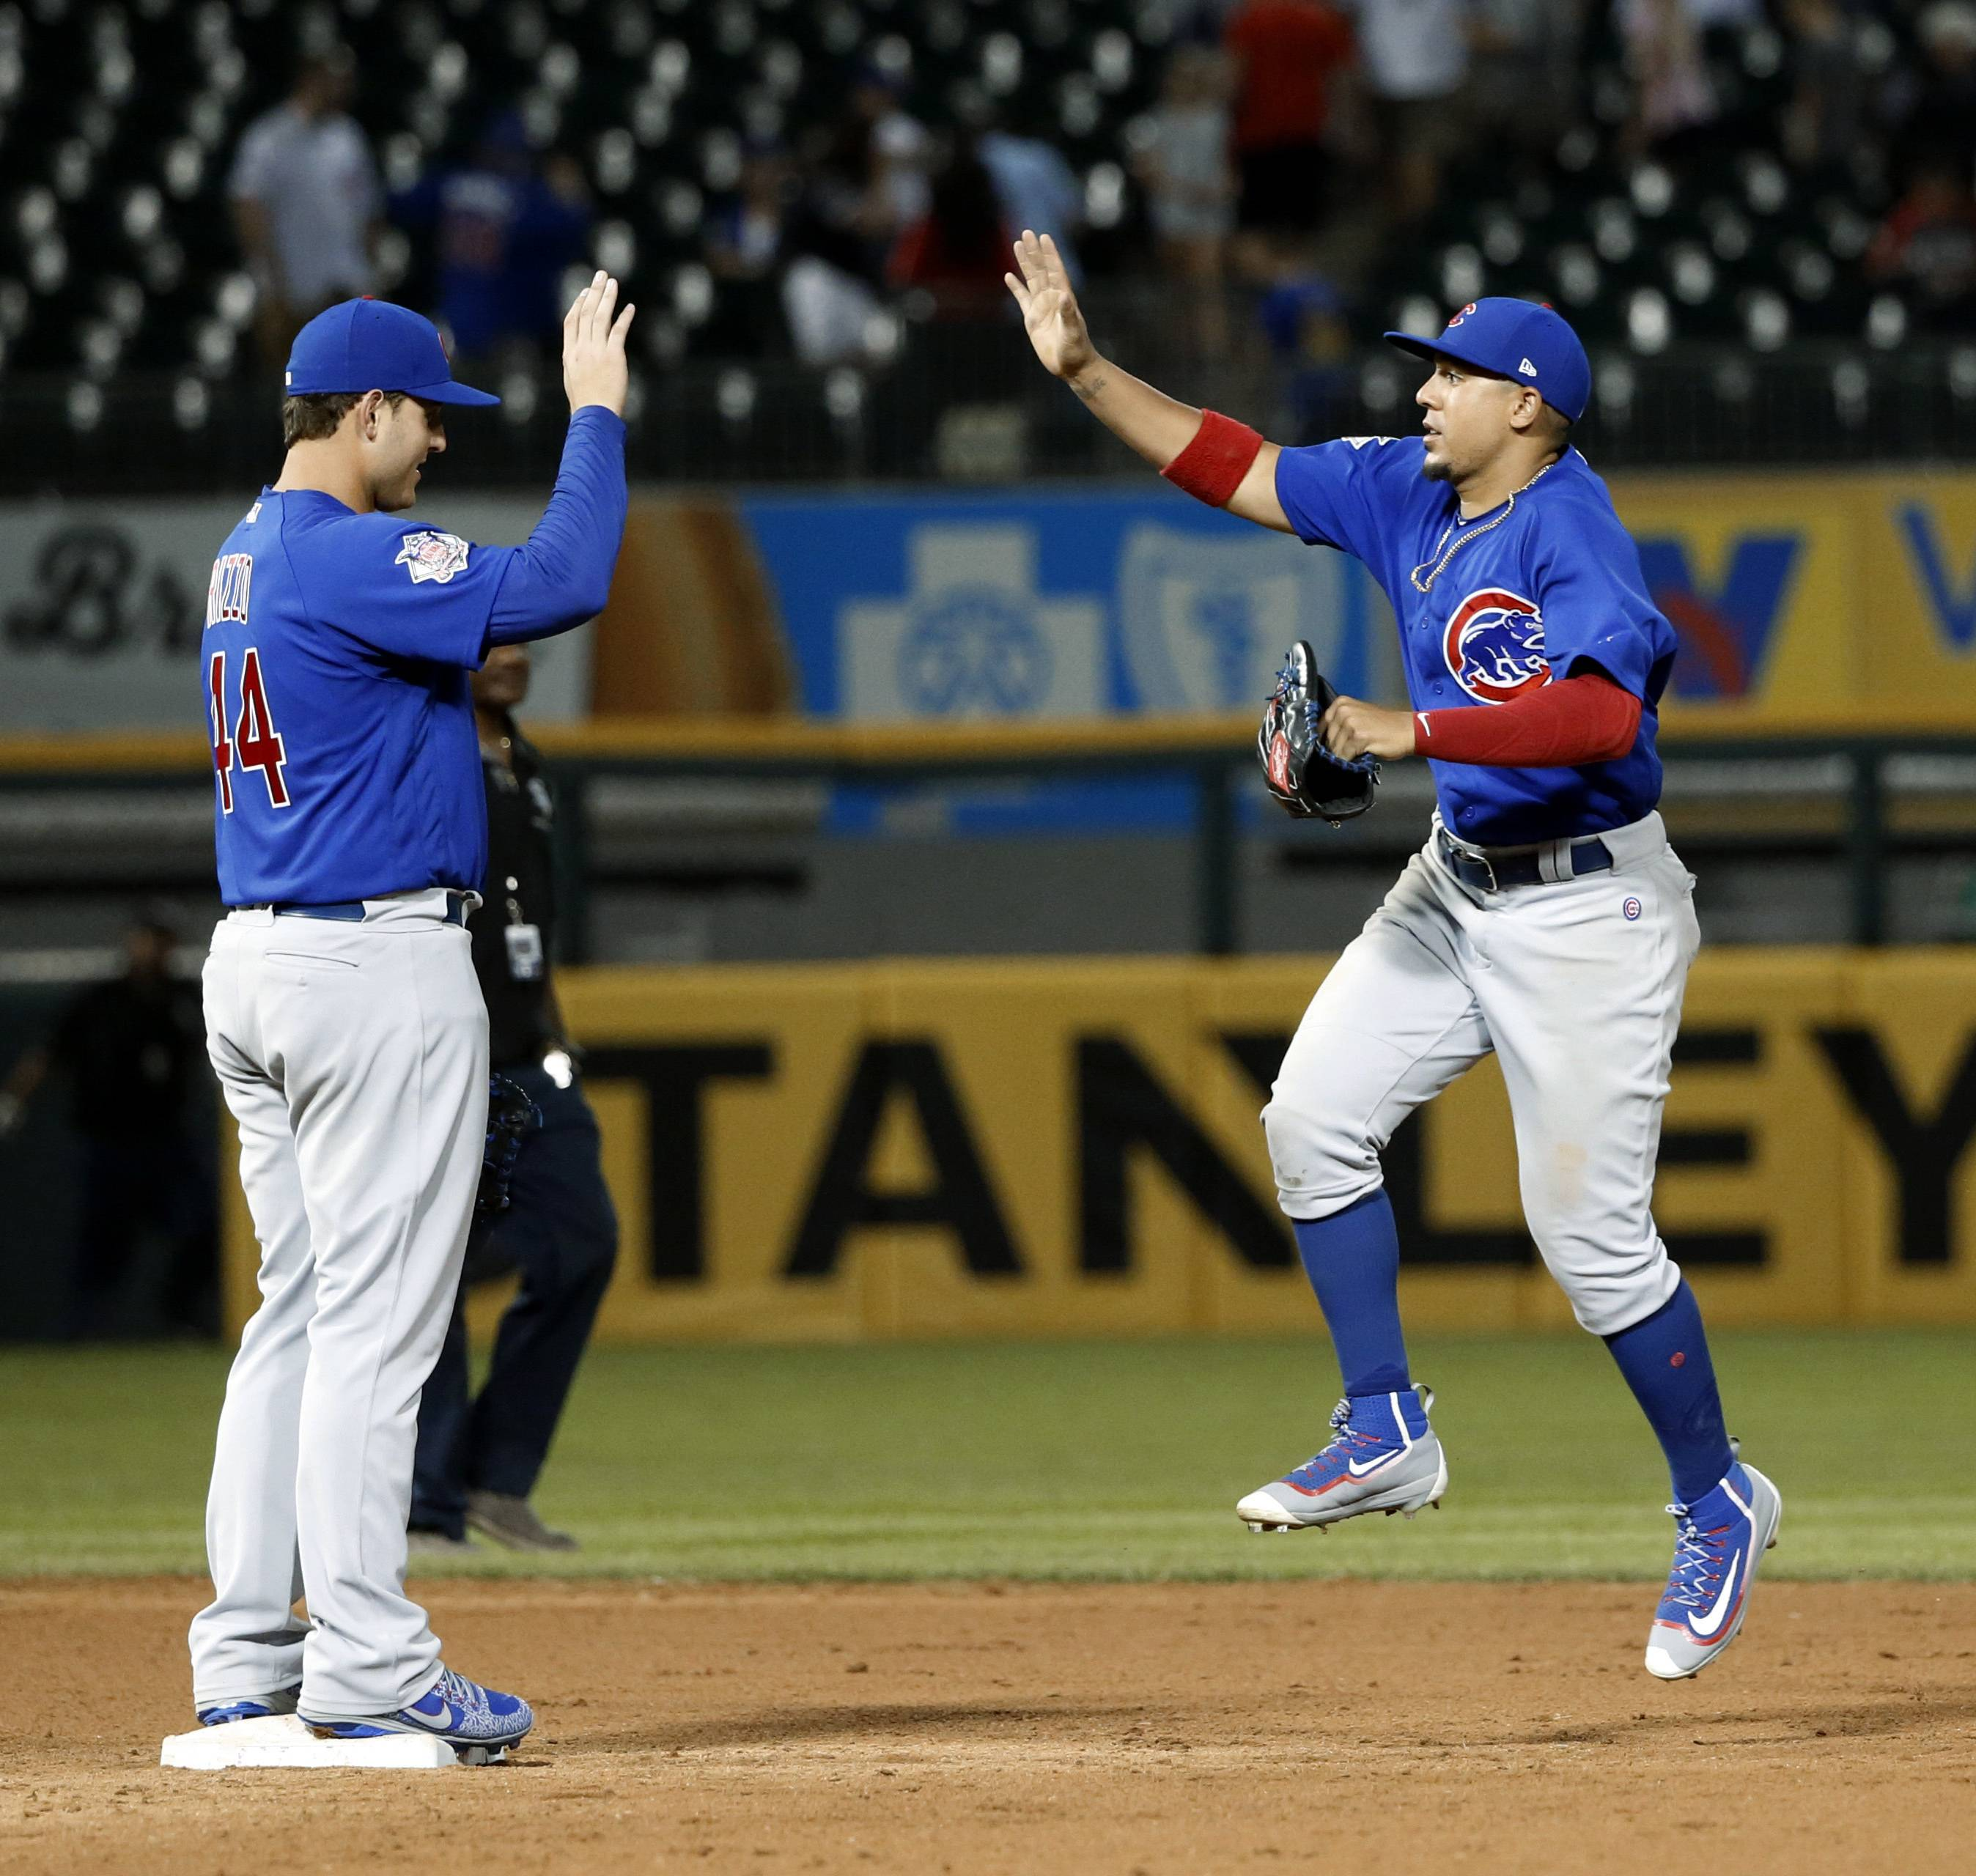 Chicago Cubs' Anthony Rizzo, left, and Jon Jay celebrate the team's 8-3 win over the Chicago White Sox in a baseball game Wednesday.